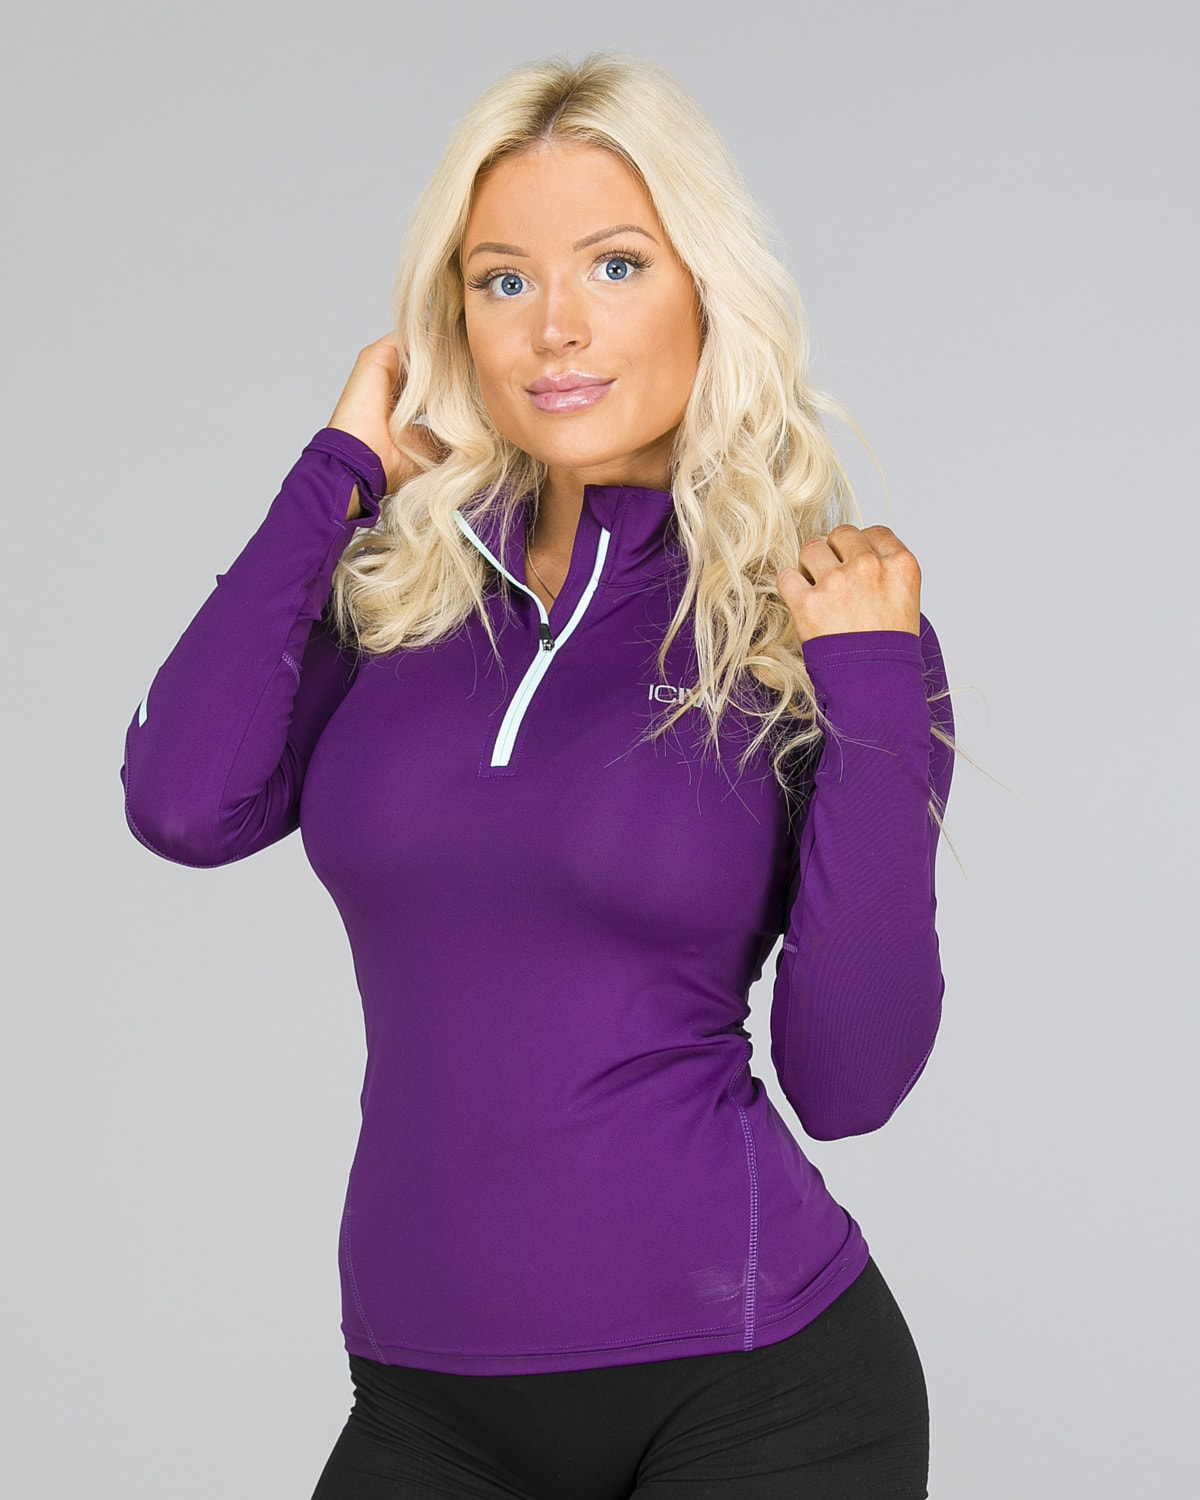 ICANIWILL – Long Sleeve 1:4 Zip – Purple a